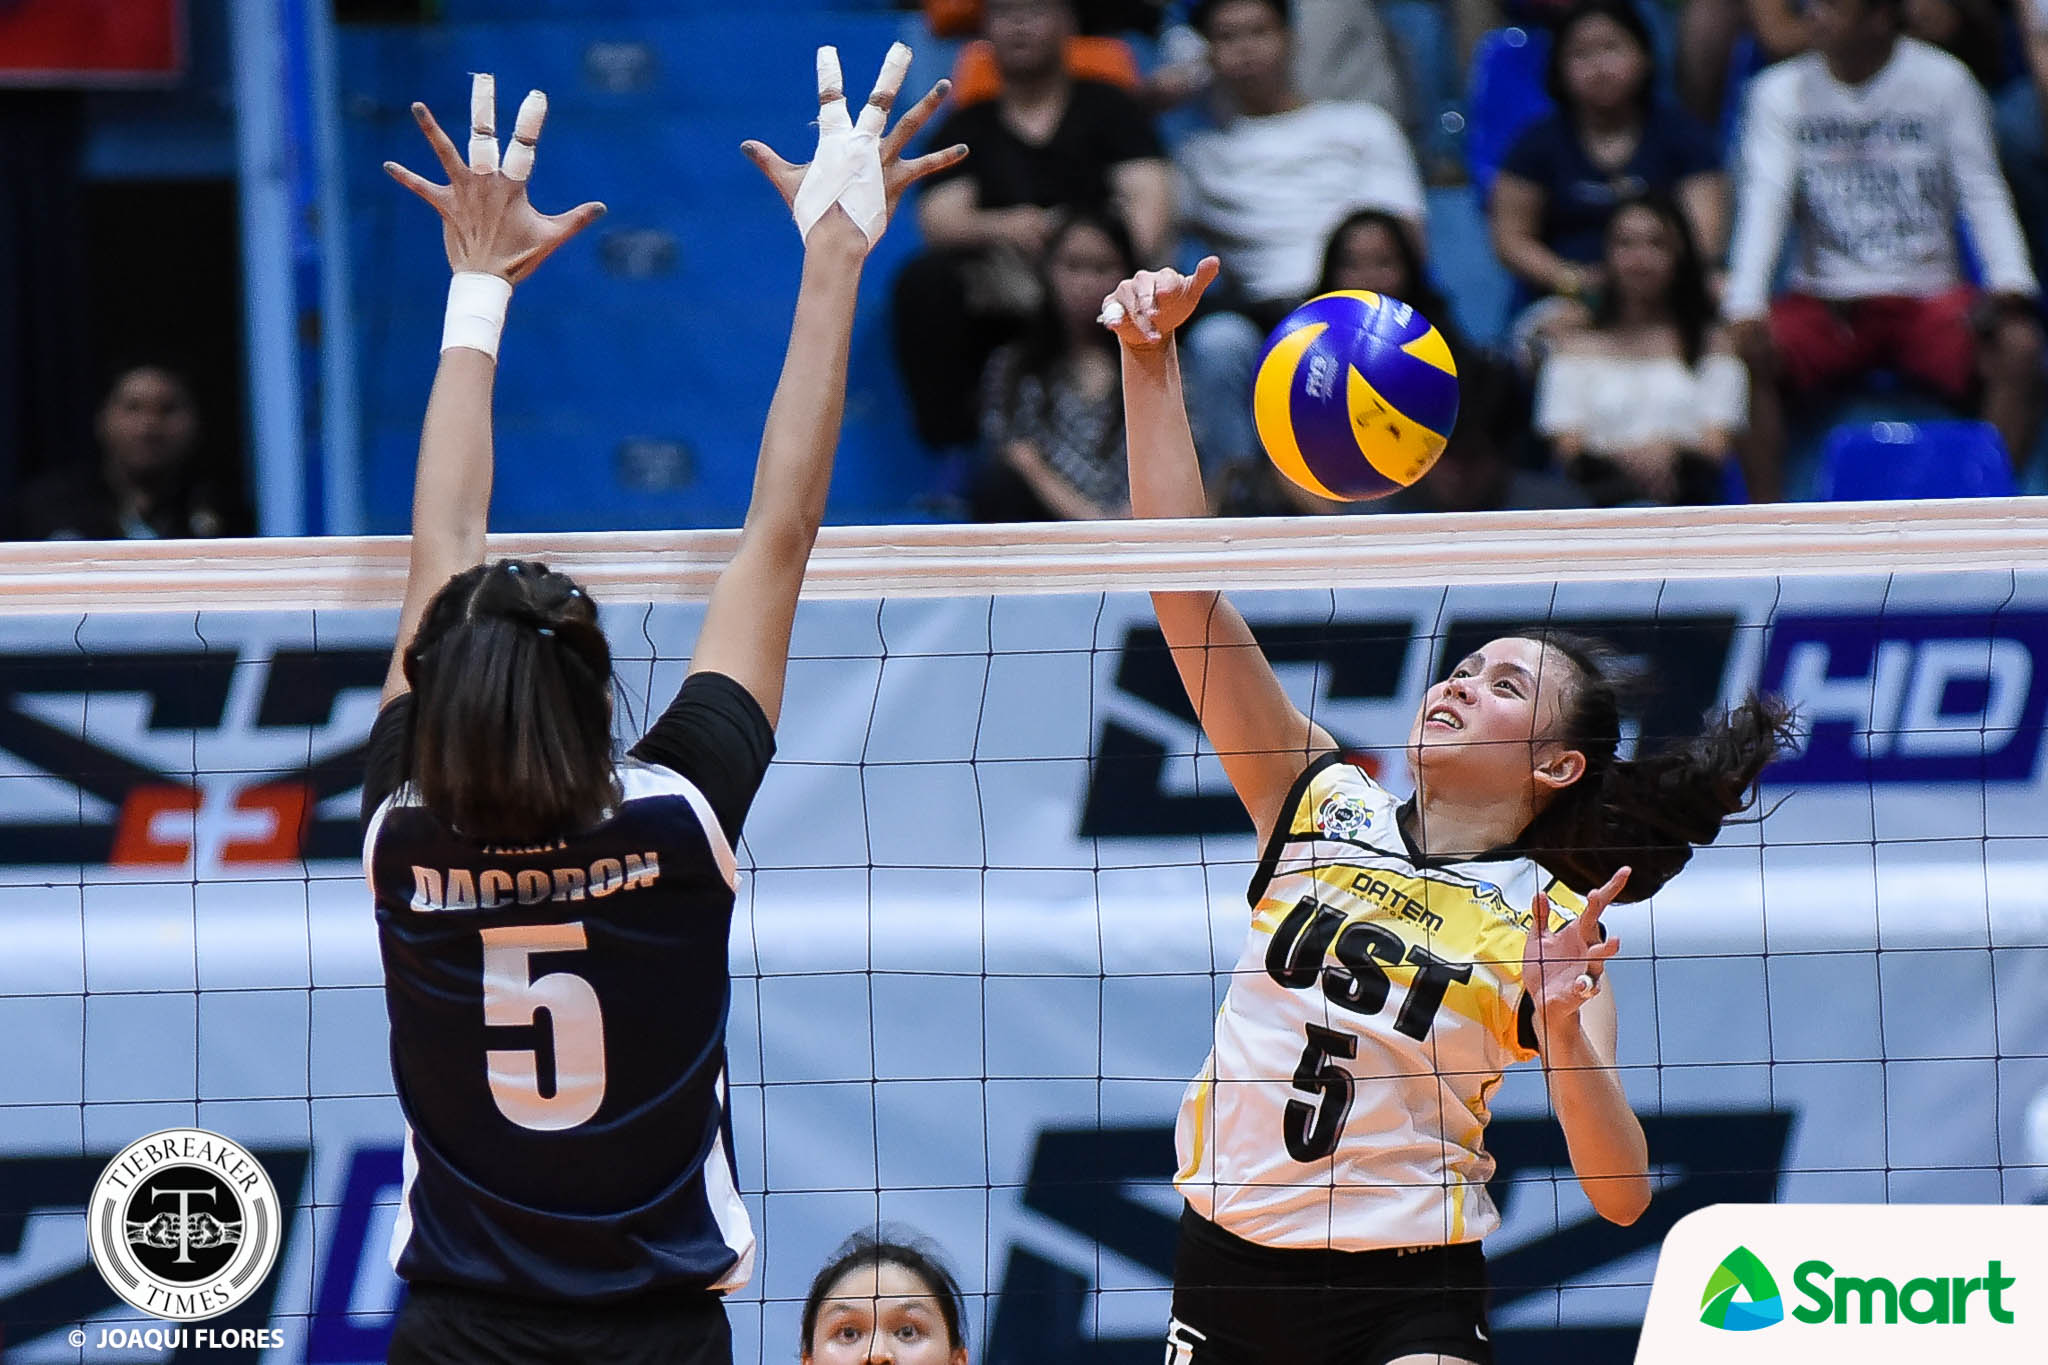 Tiebreaker Times UST is not just a Sisi Rondina team News UAAP UST Volleyball  UST Women's Volleyball UAAP Season 80 Women's Volleyball UAAP Season 80 Kungfu Reyes Cherry Rondina